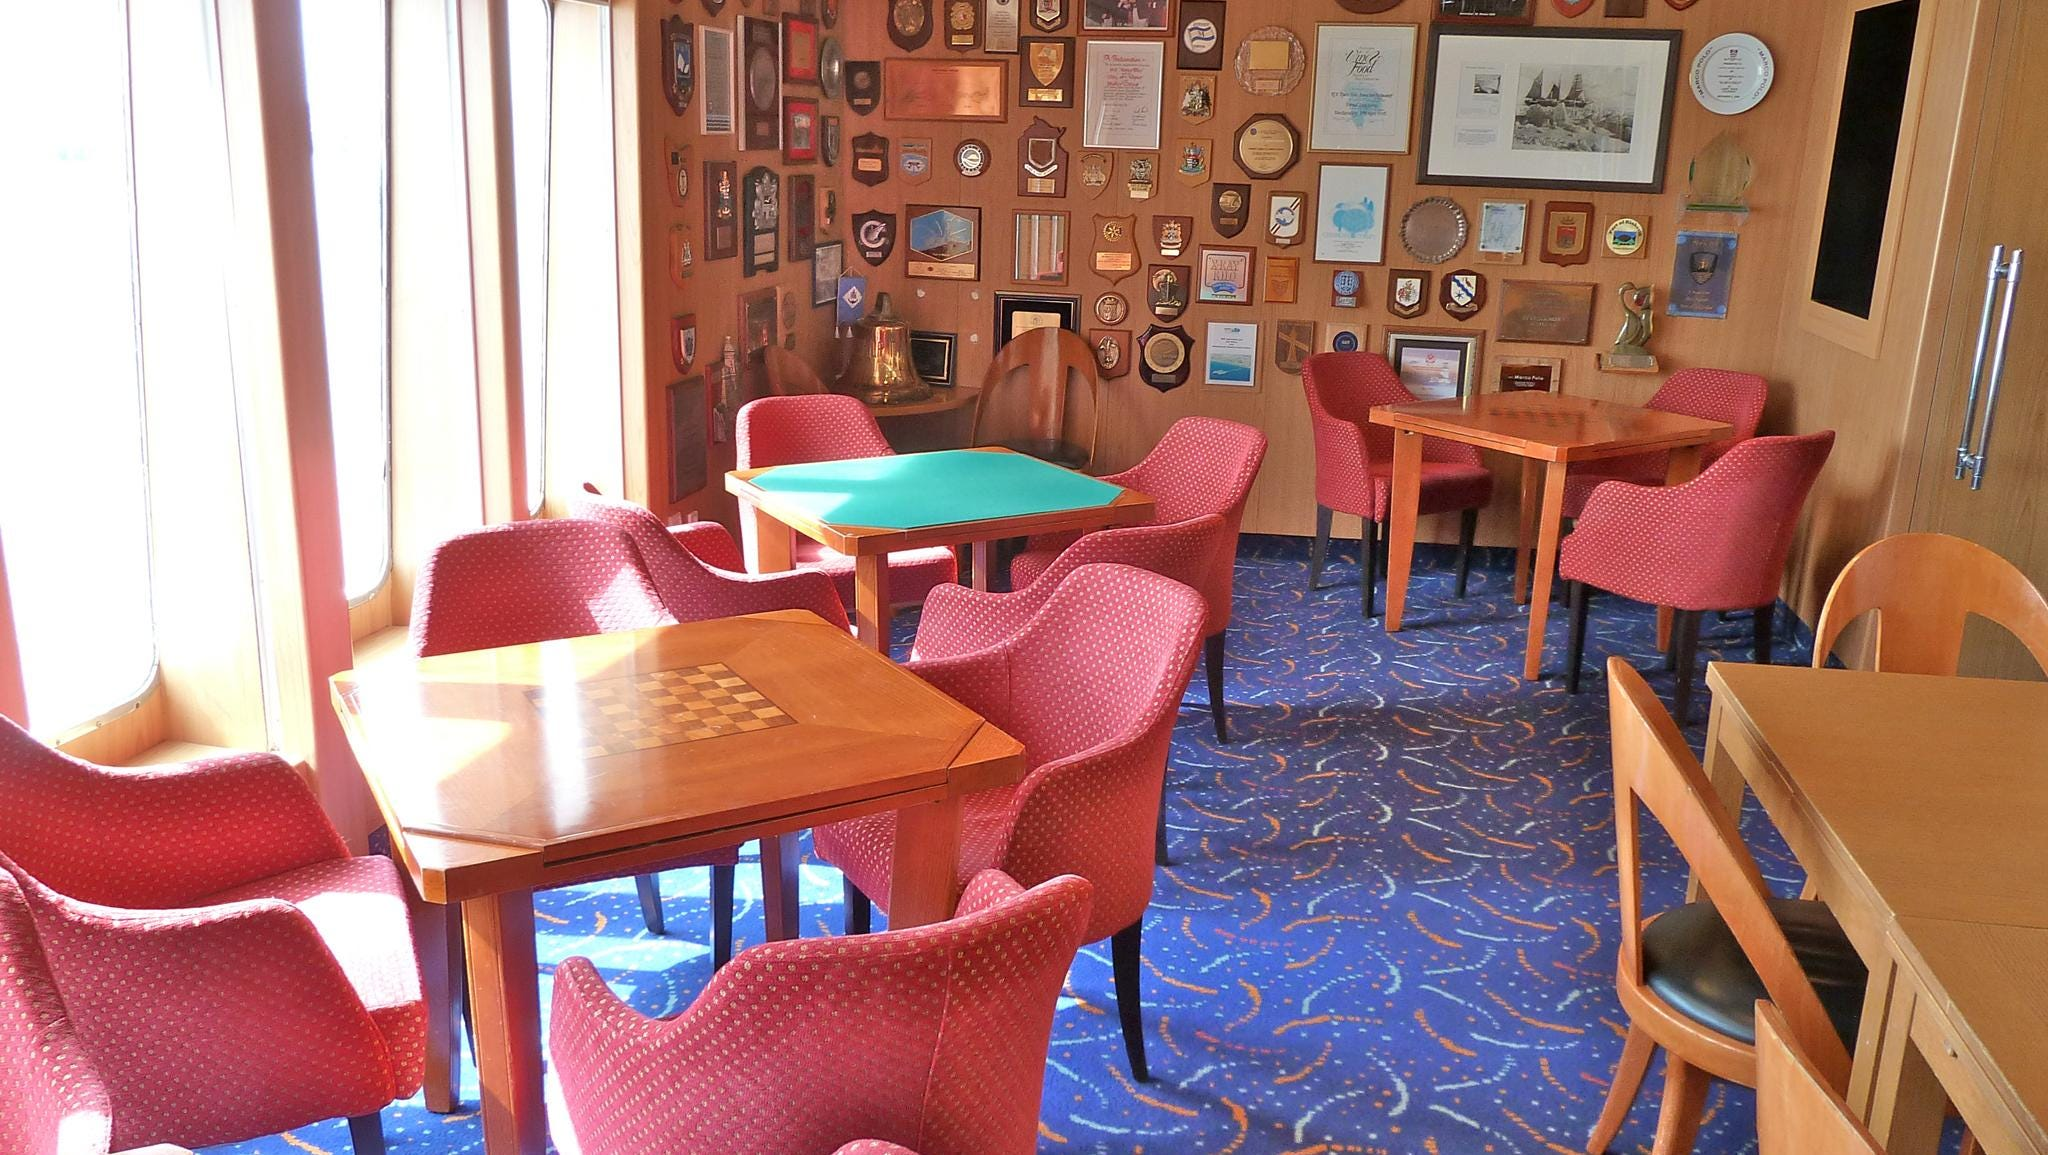 Stocked with board games, puzzles and cards, the Card Room is located on the port side of Magellan Deck.